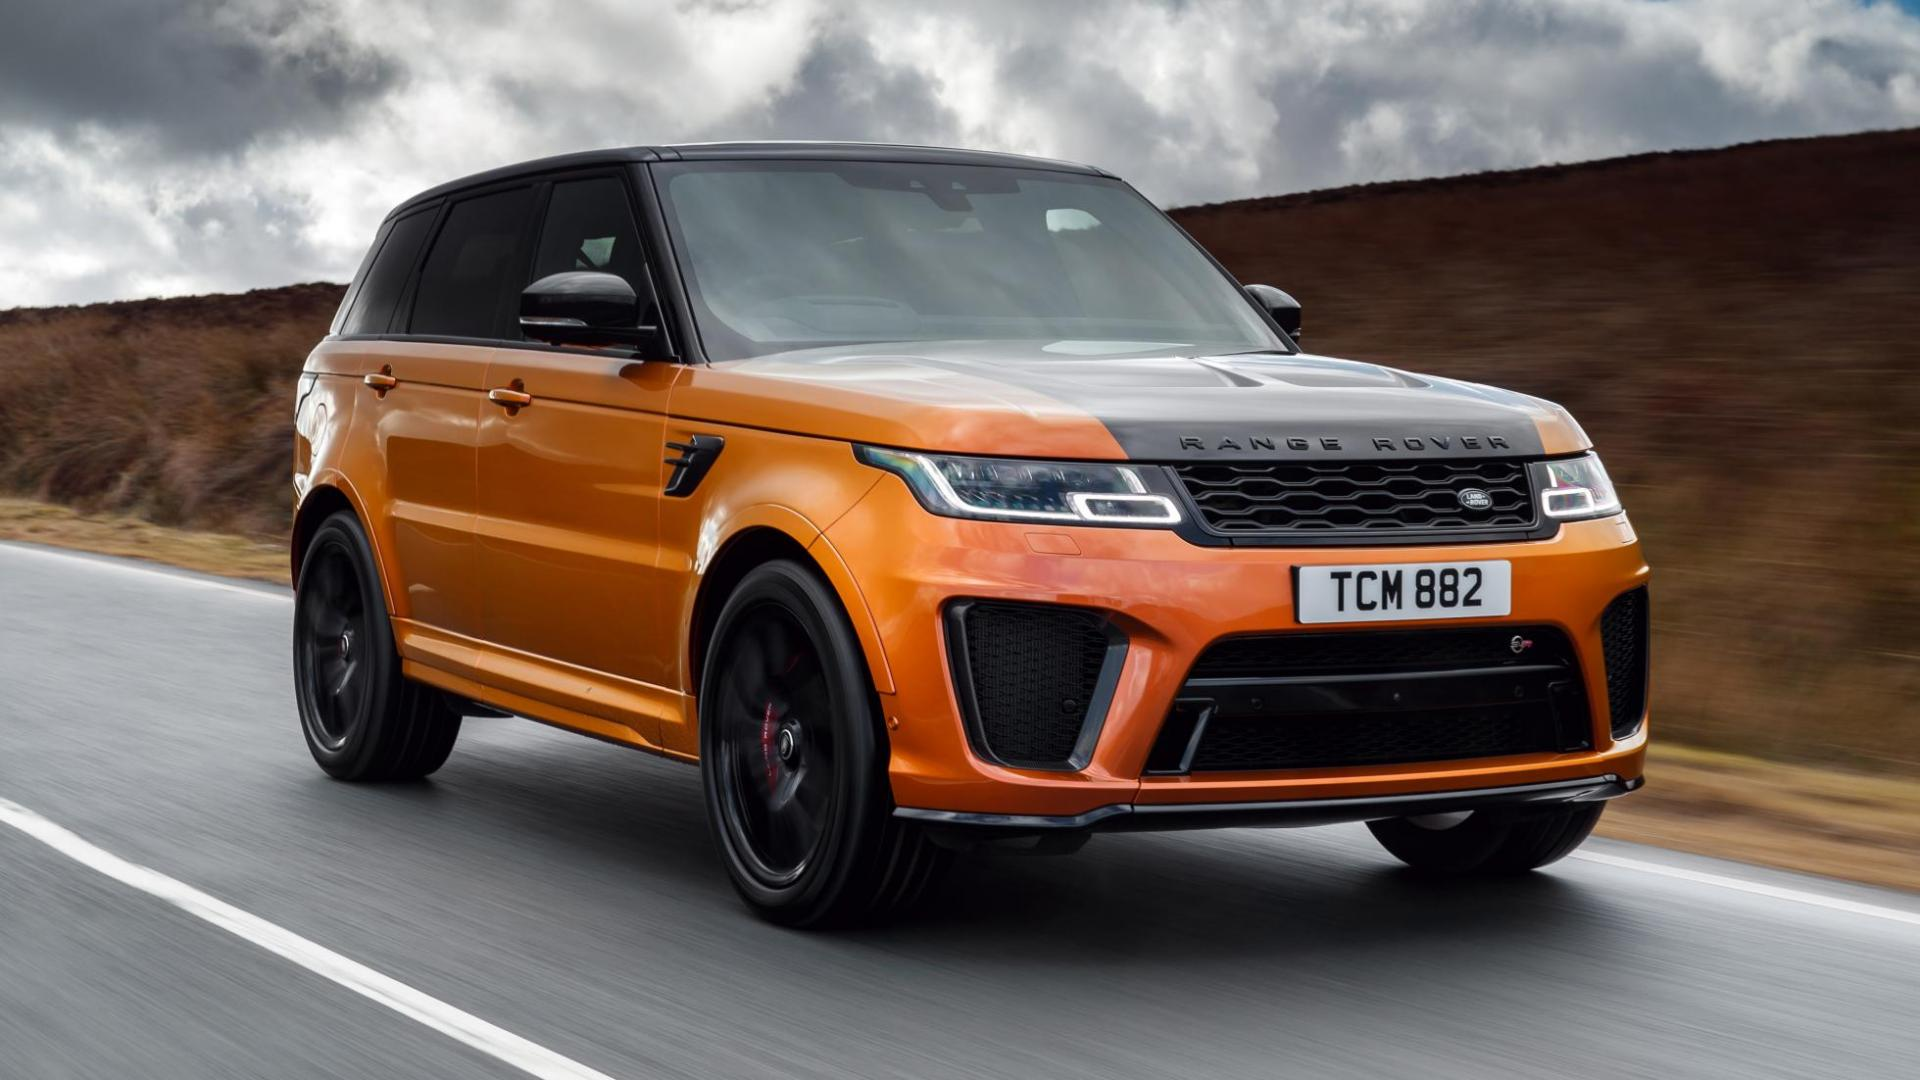 range rover sport svr 2018 eerste rij indruk topgear nederland. Black Bedroom Furniture Sets. Home Design Ideas